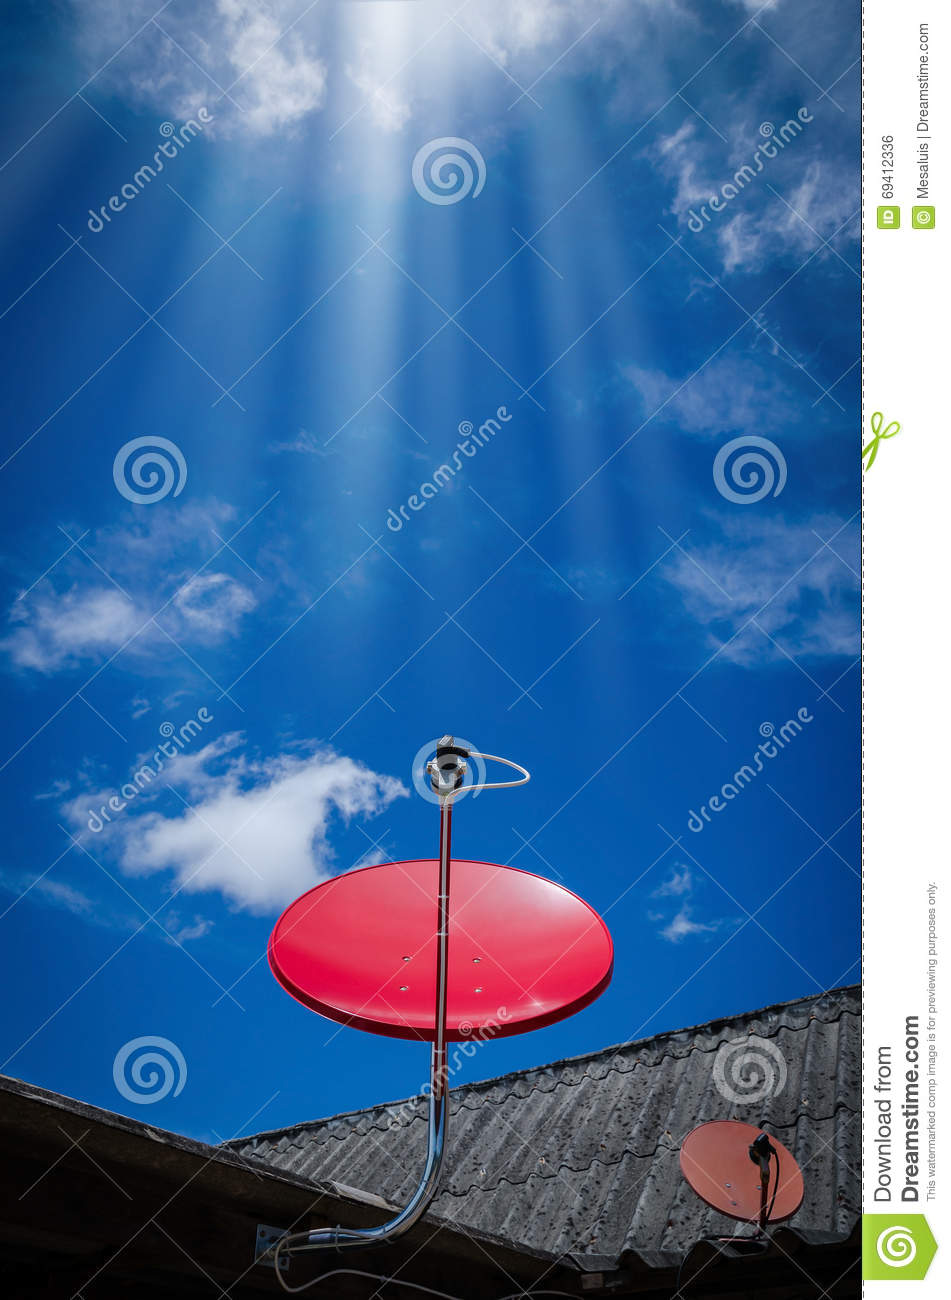 Download Red Satellite TV Receiver Dish On The Old  Roof Stock Photo - Image of dish, radio: 69412336